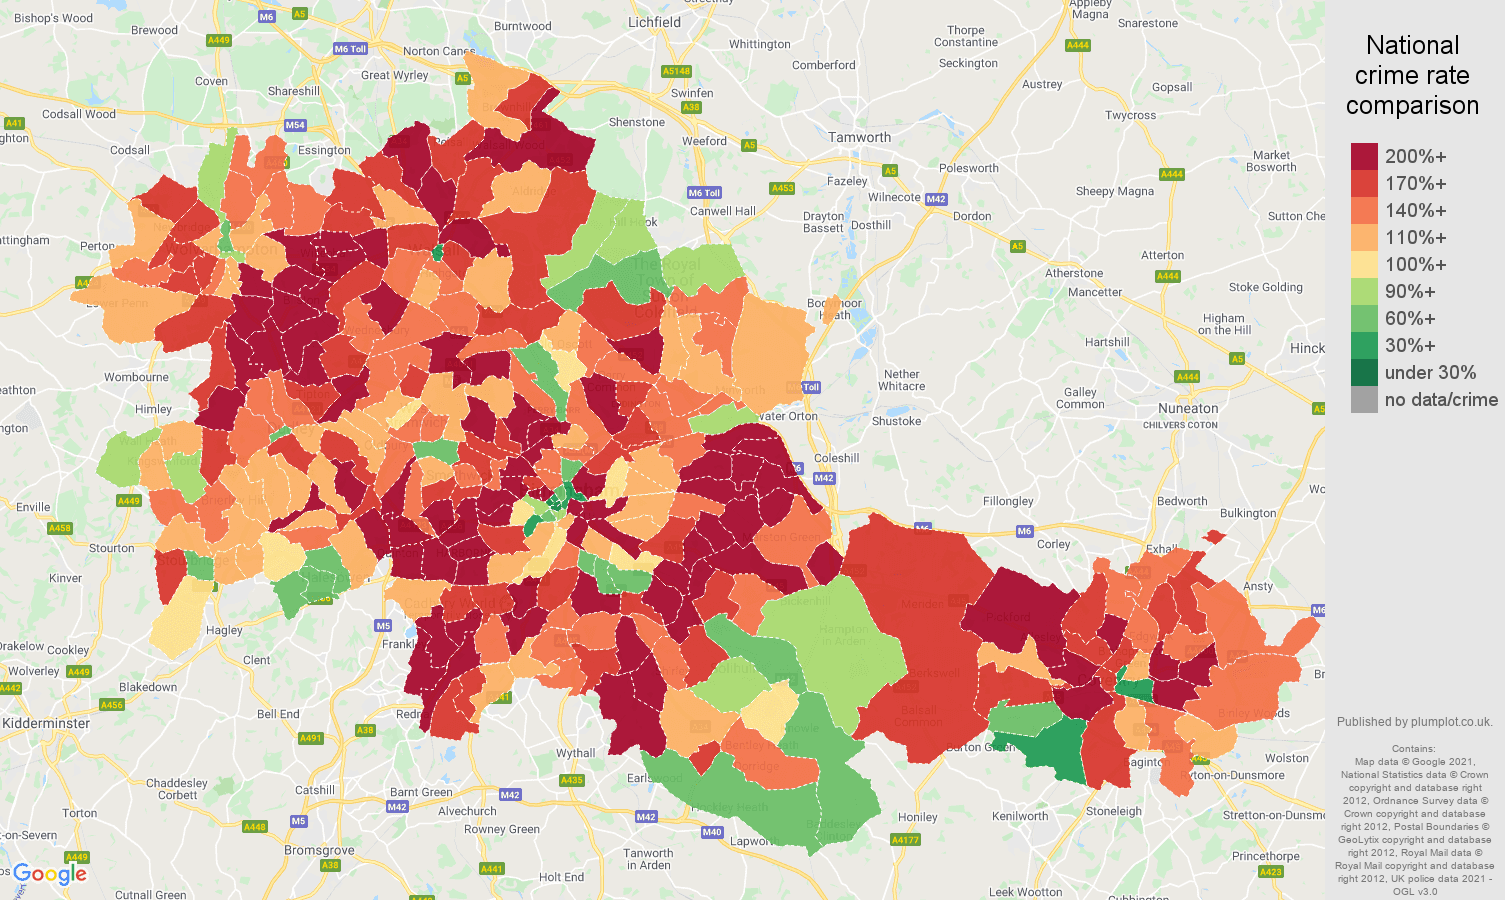 West Midlands county vehicle crime rate comparison map